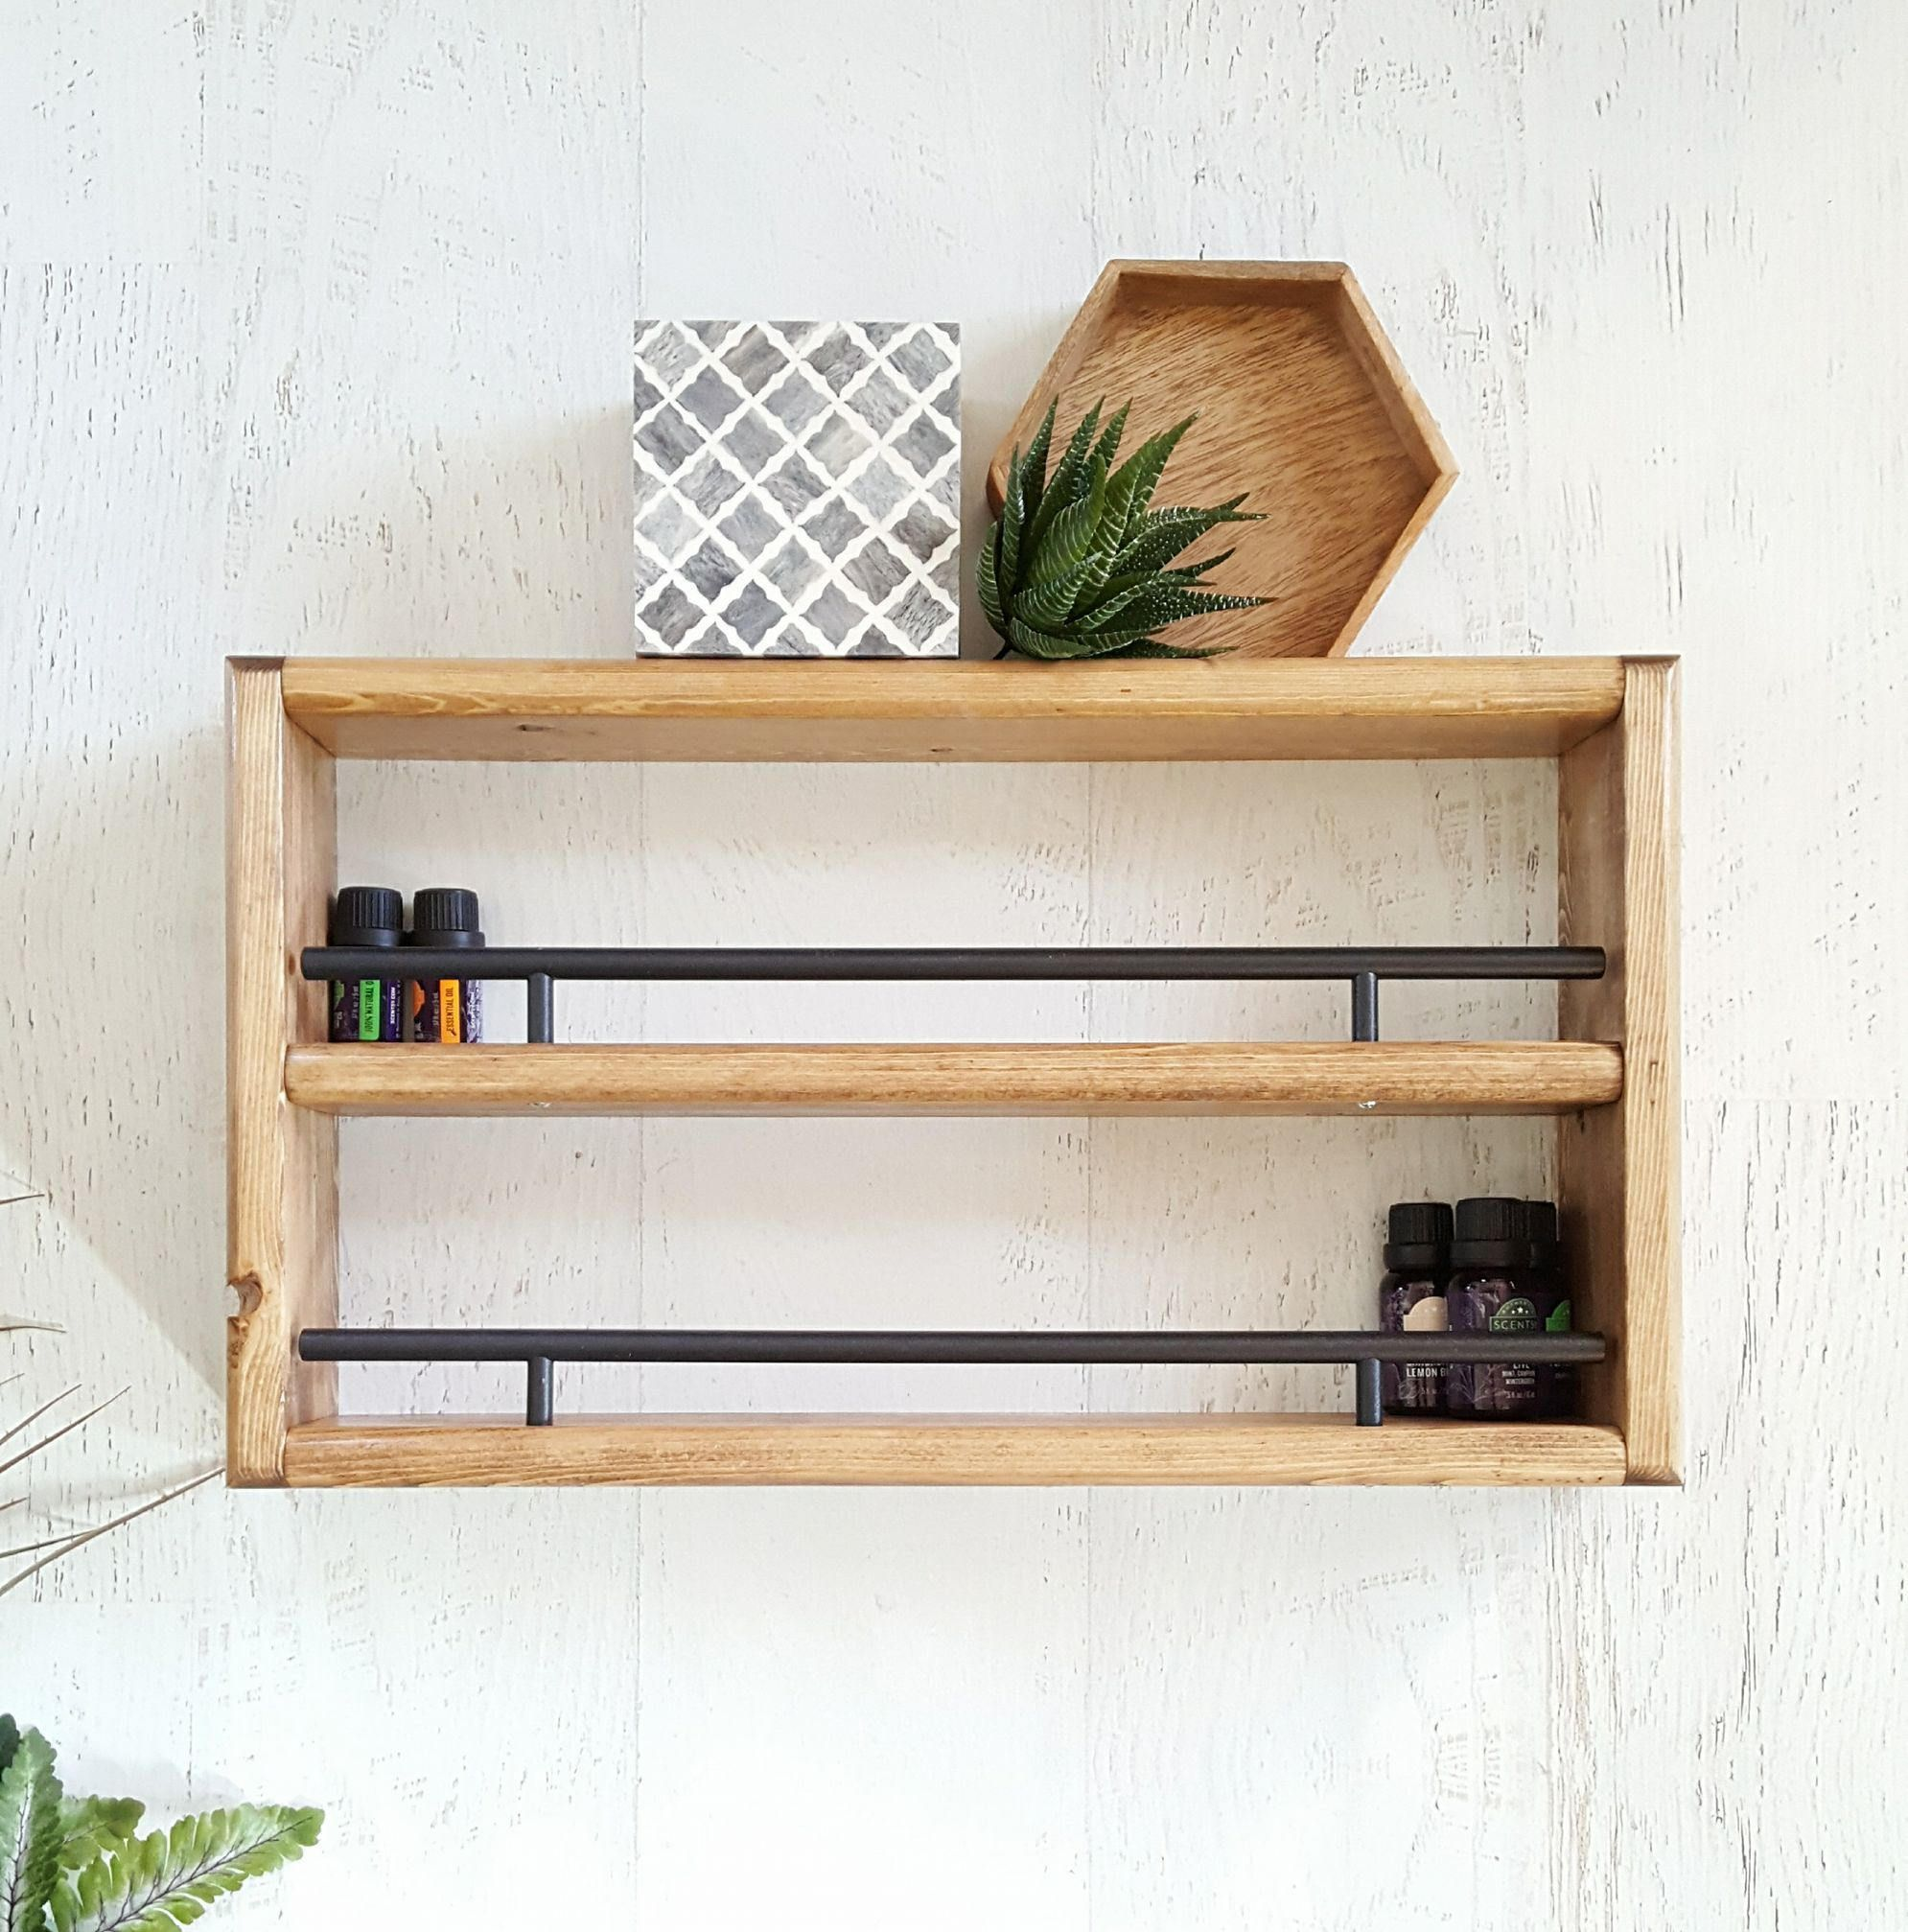 Wall Mount Spice Rack Plans: Spice Rack, Wall Mounted Spice